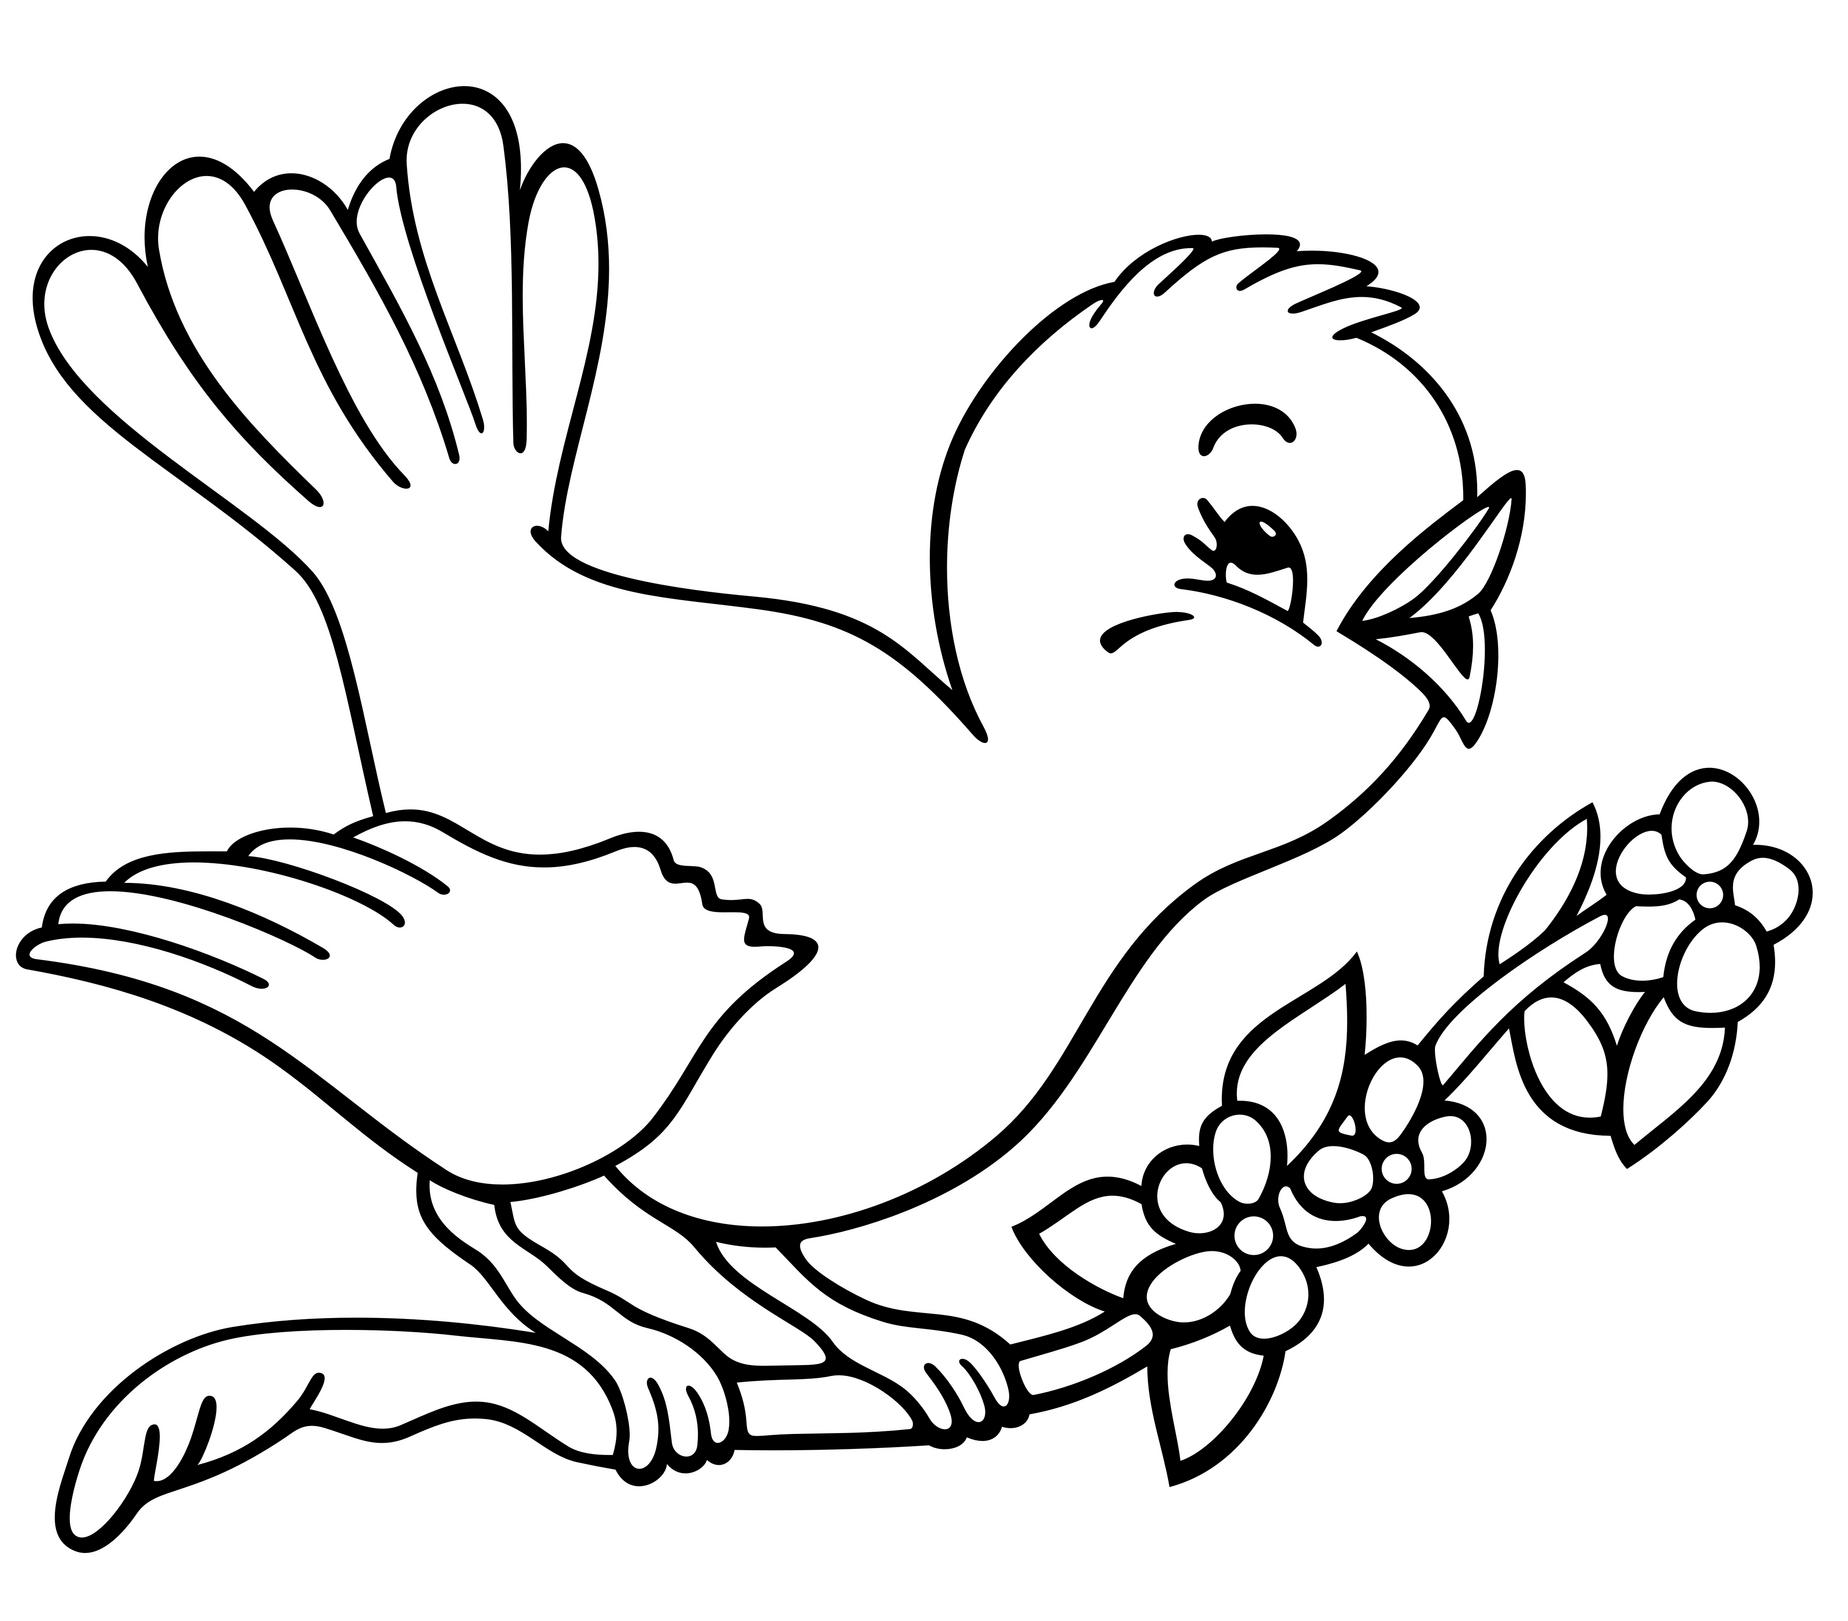 Cuckoo-Bird-coloring-pages